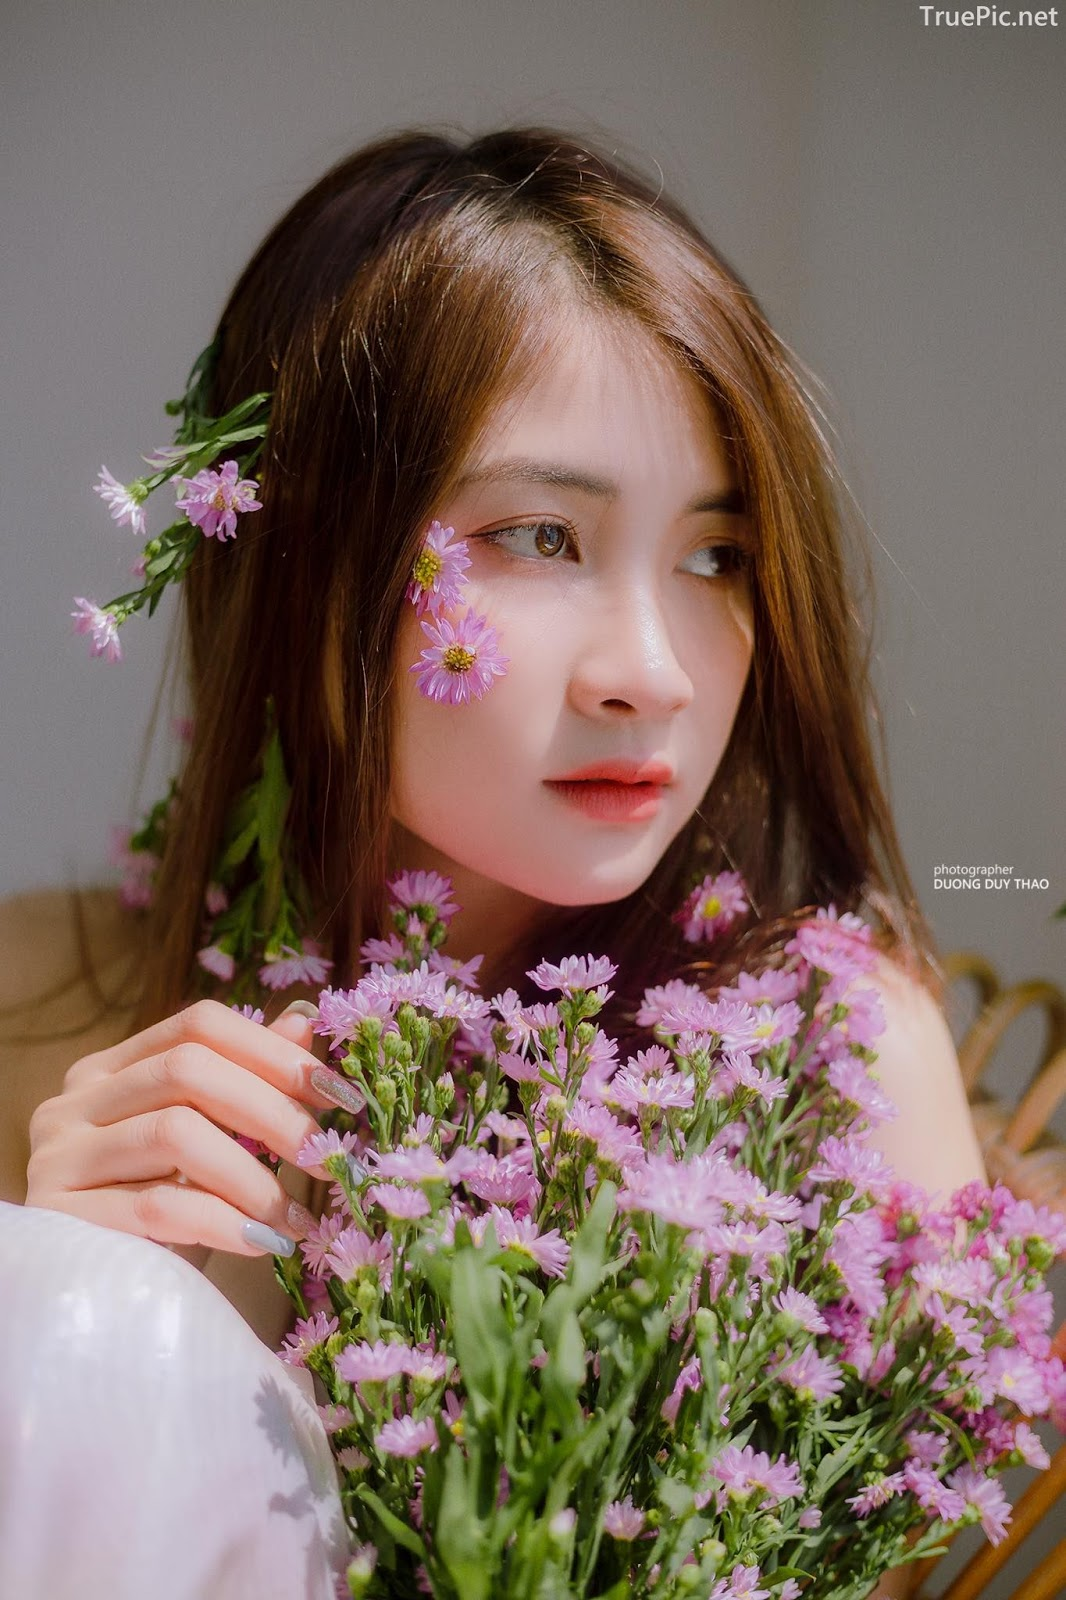 Vietnamese beautiful model Vu Thanh Huong - Fairies purple chrysanthemum - Picture 6